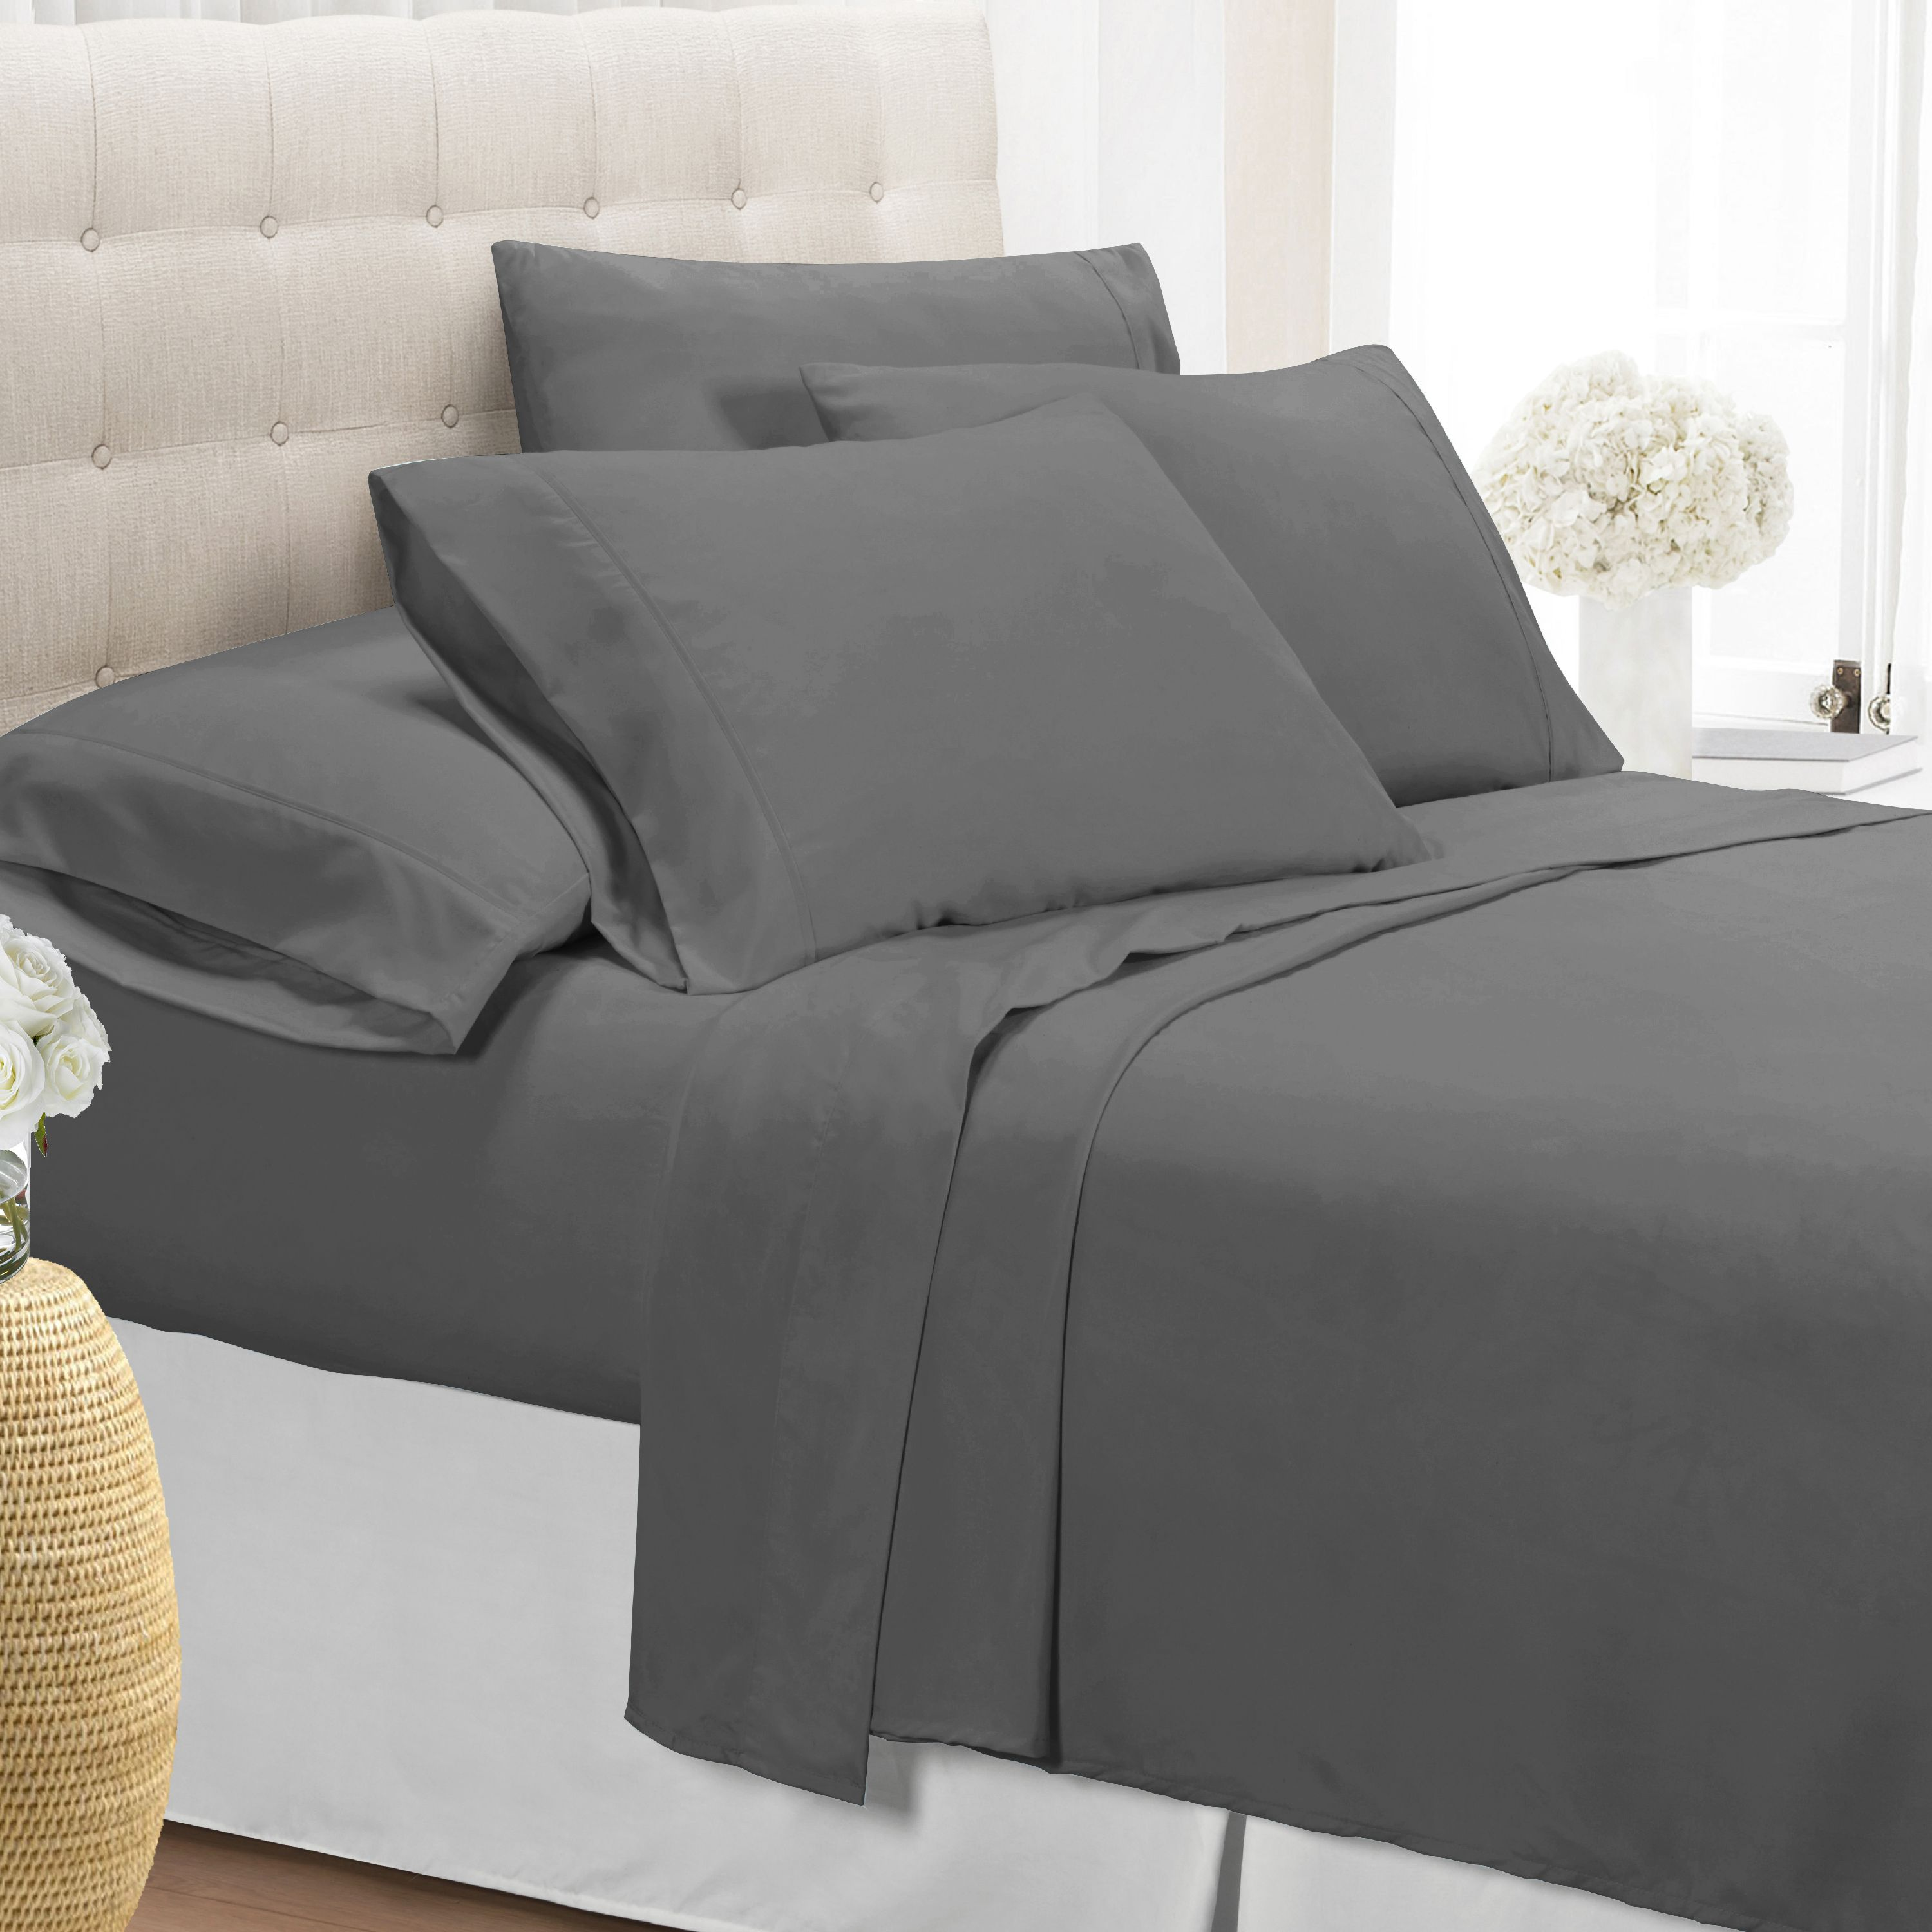 Ultra-Soft 1800 Series Wrinkle Free 6PC Sheet Set